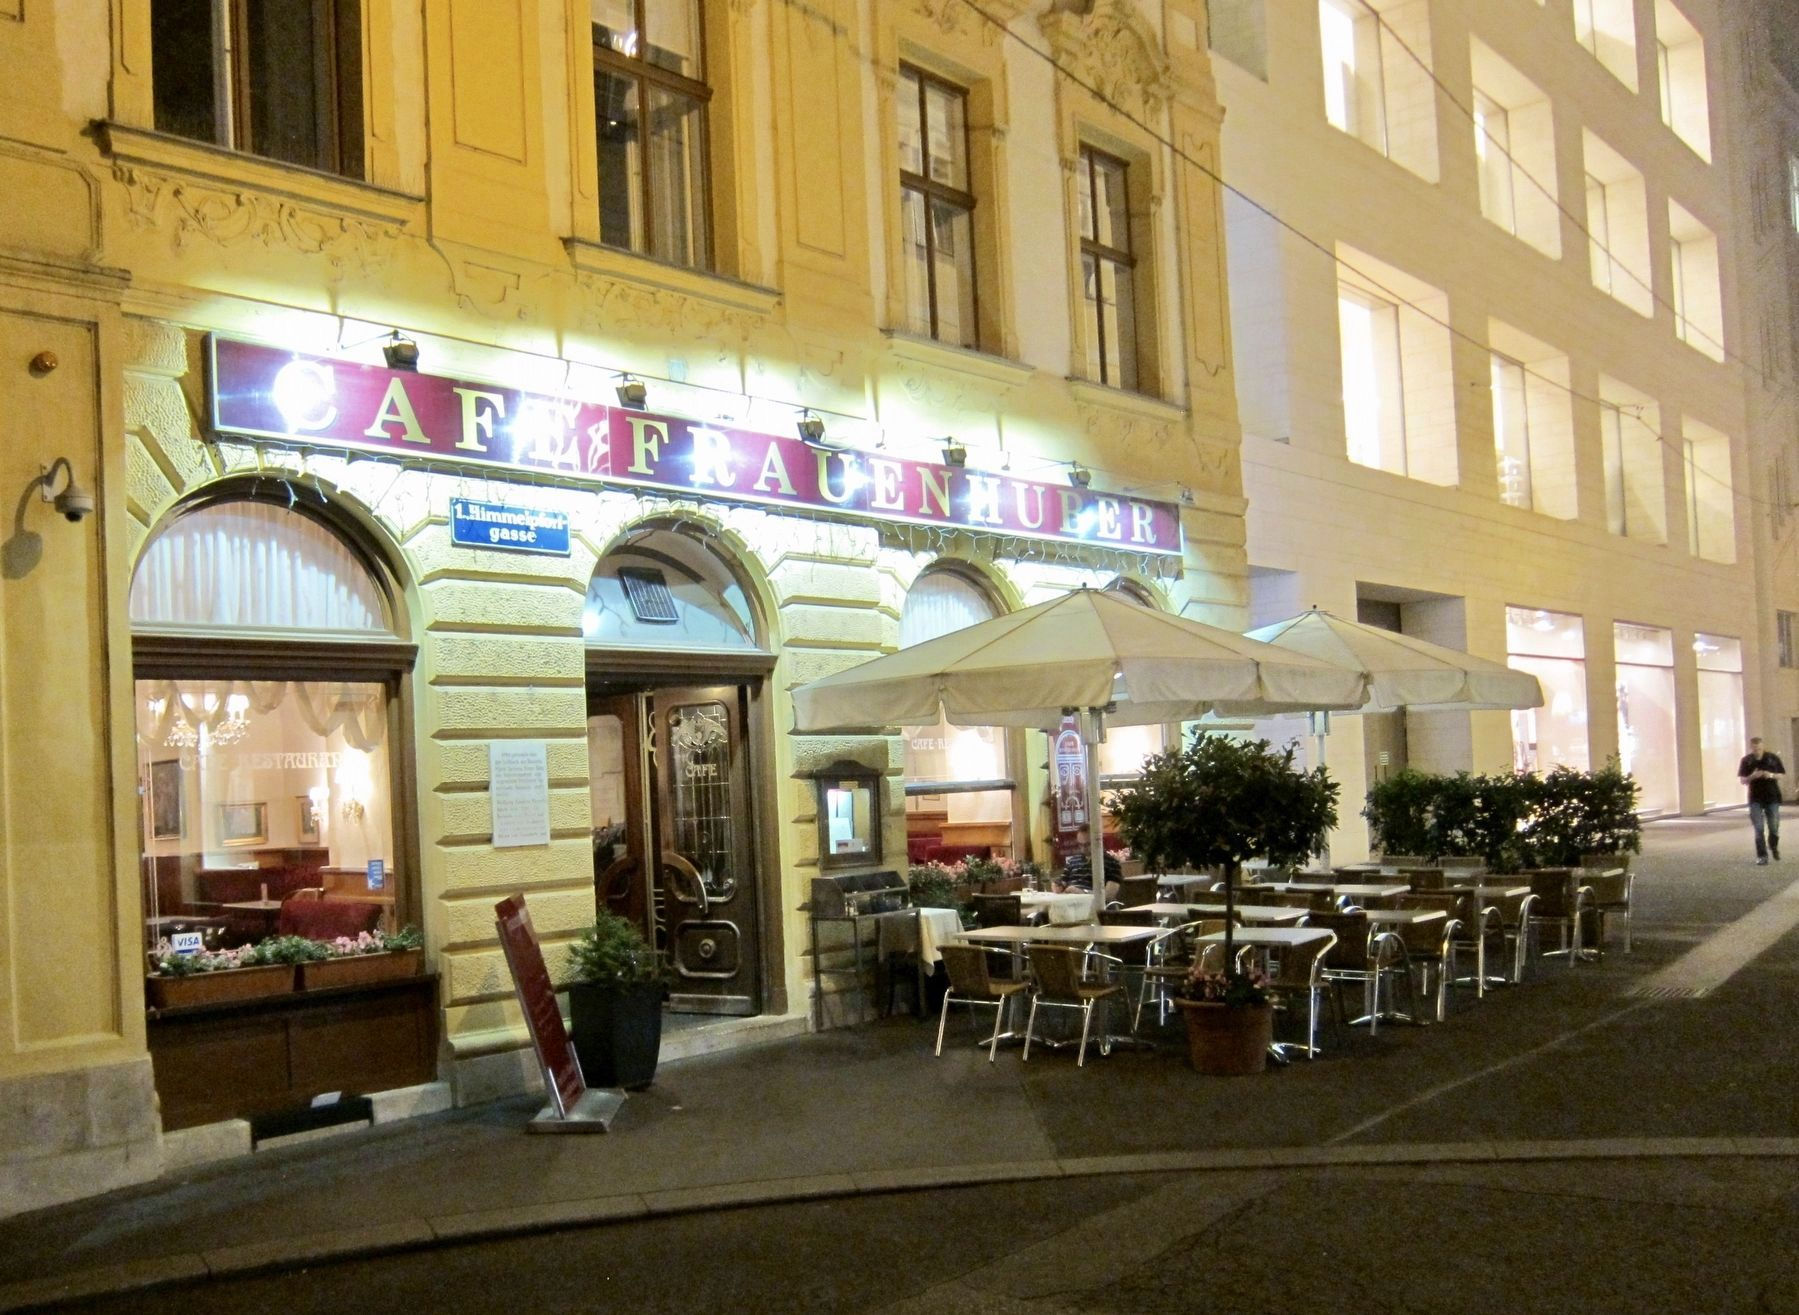 Café Frauenhuber Marker - Wide View image. Click for full size.